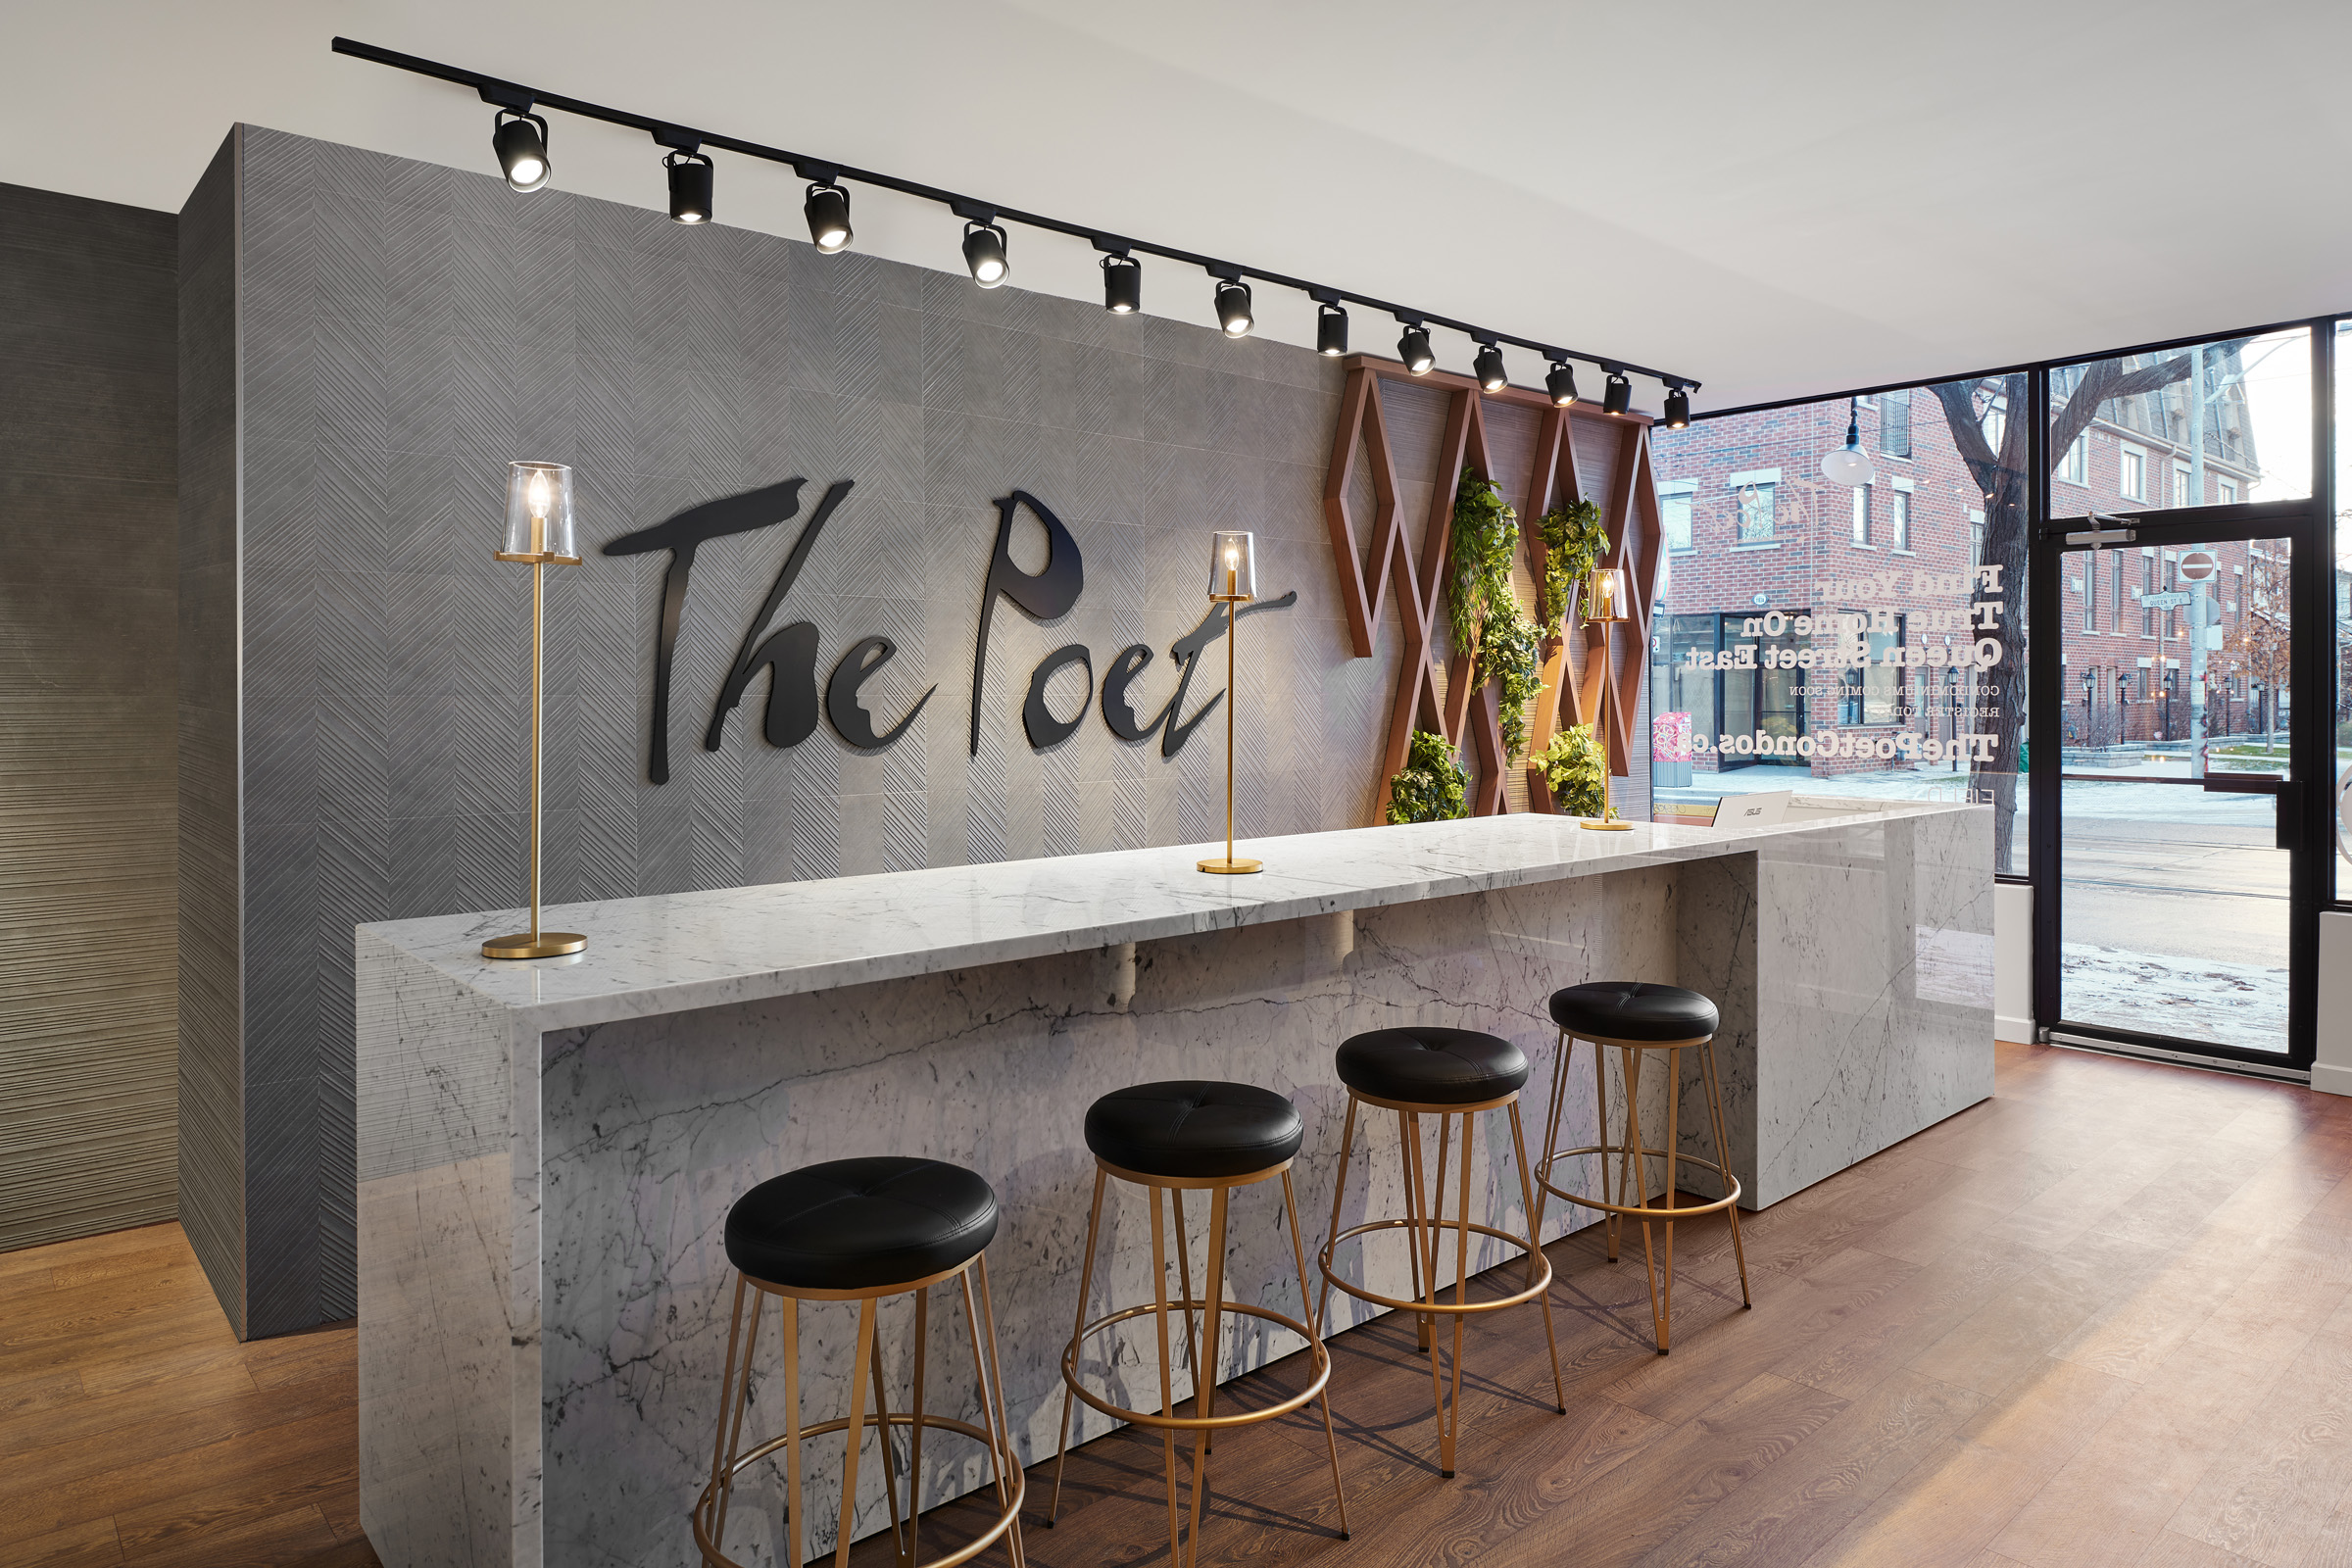 The Poet lobby with logo on wall and marble bar with stools